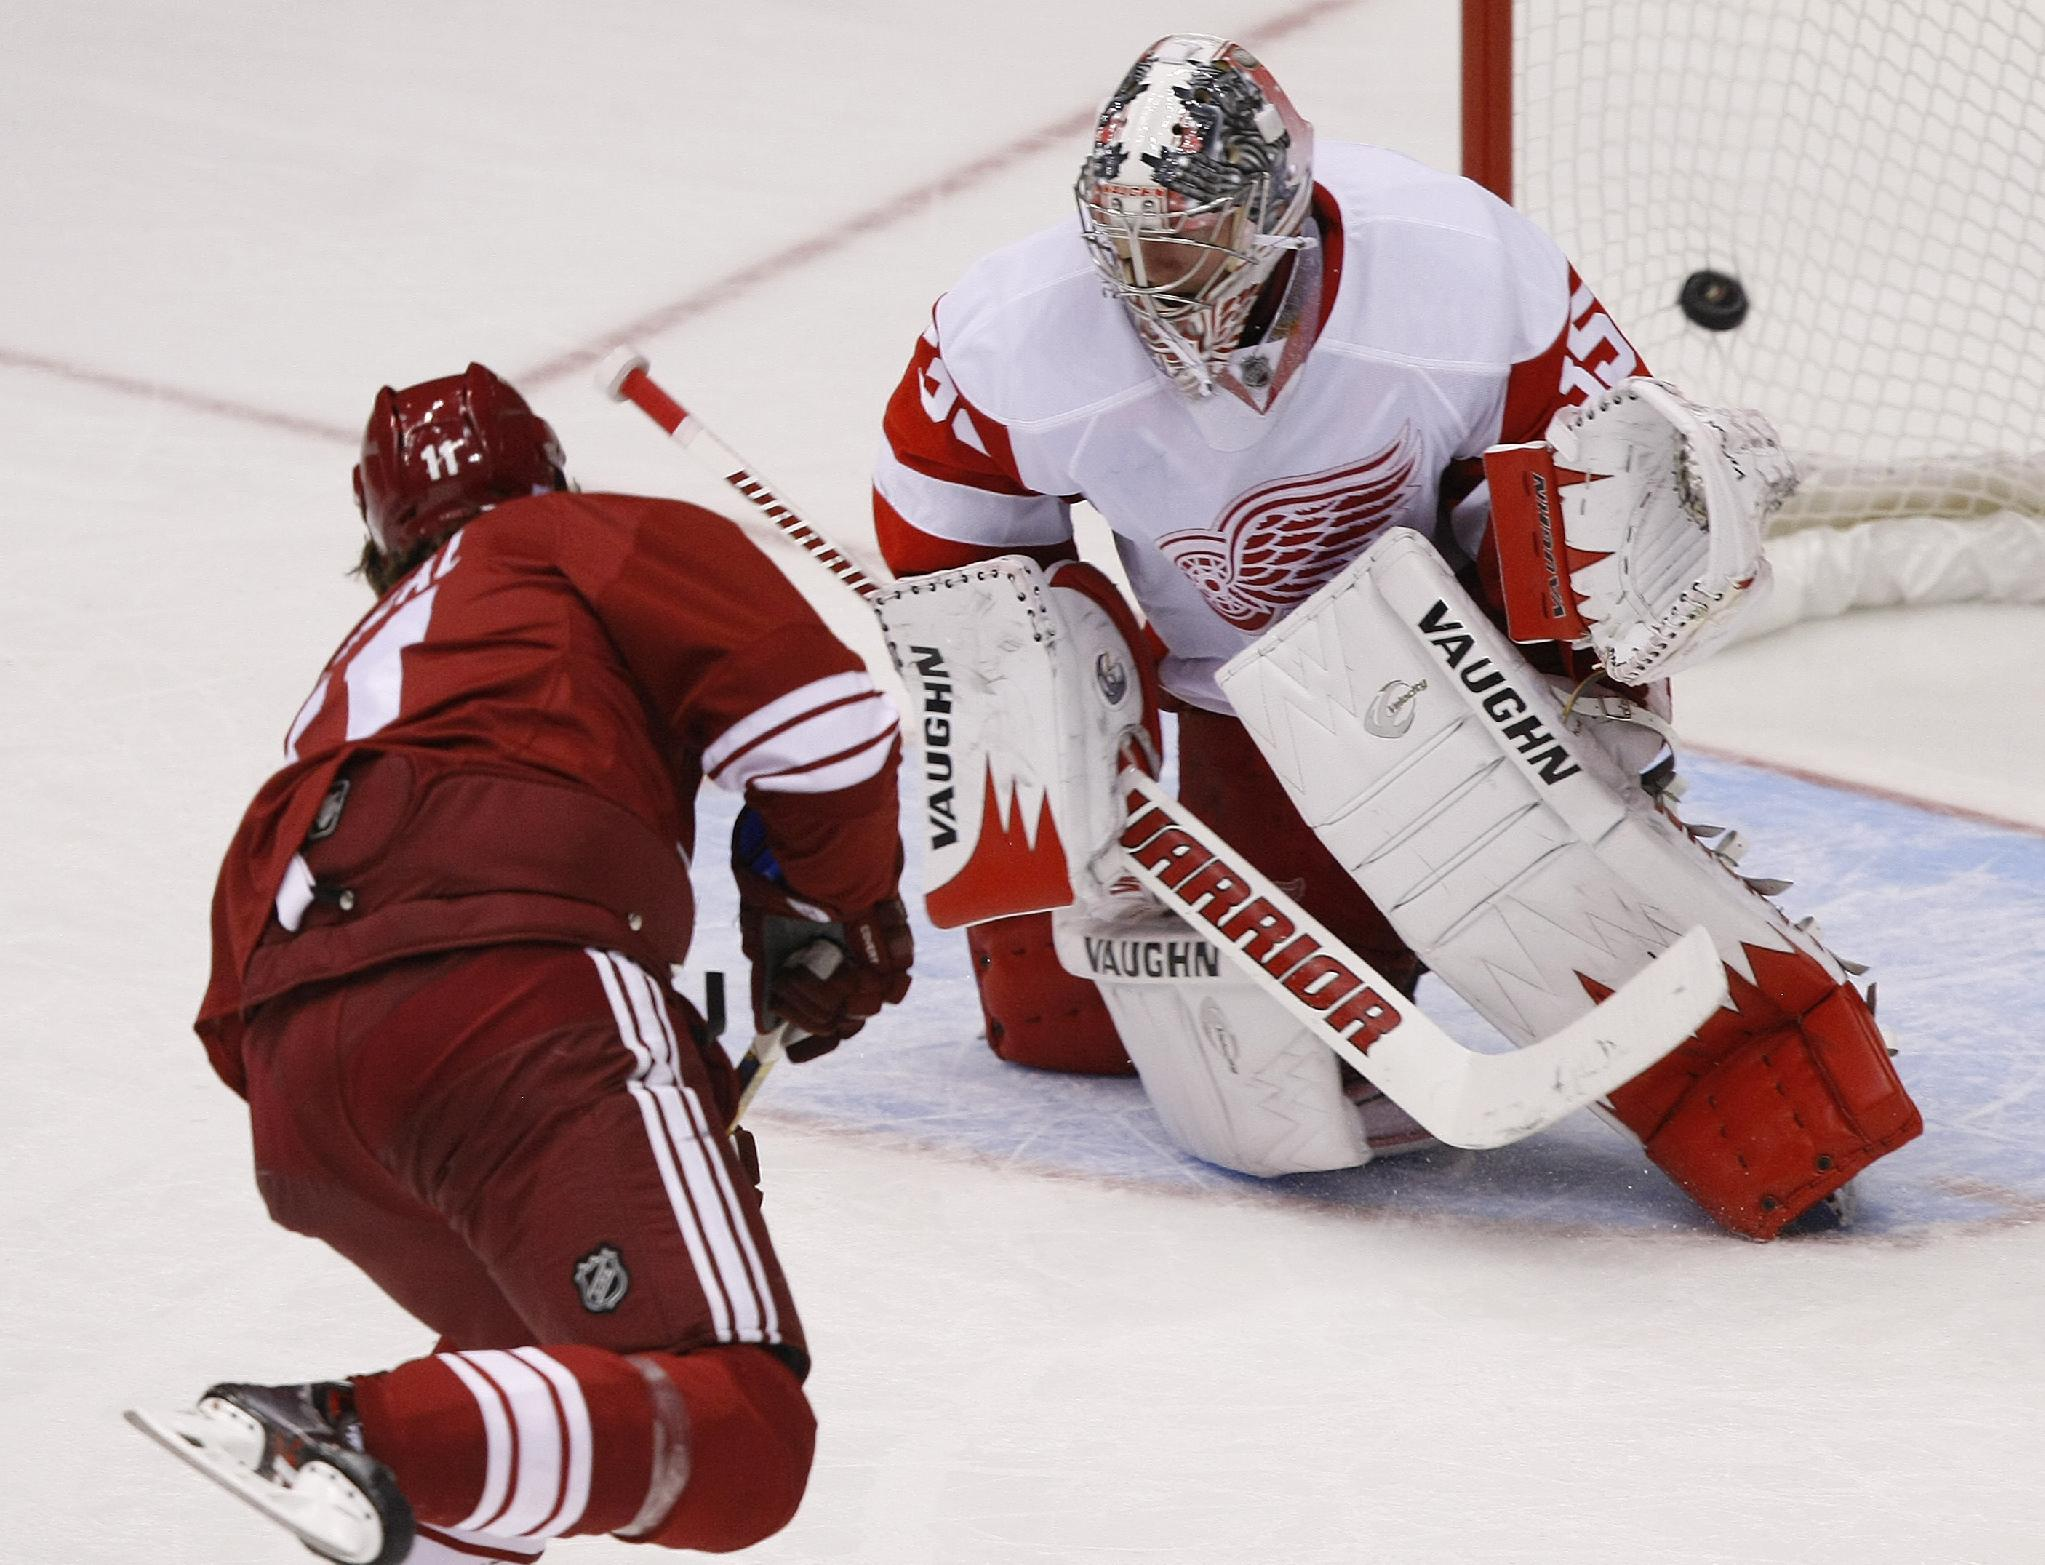 Phoenix Coyotes center Martin Hanzal (11), left, scores a third period goal on Detroit Red Wings goalie Jimmy Howard (35) during an NHL hockey game on Saturday, Oct. 19, 2013, in Glendale, Ariz